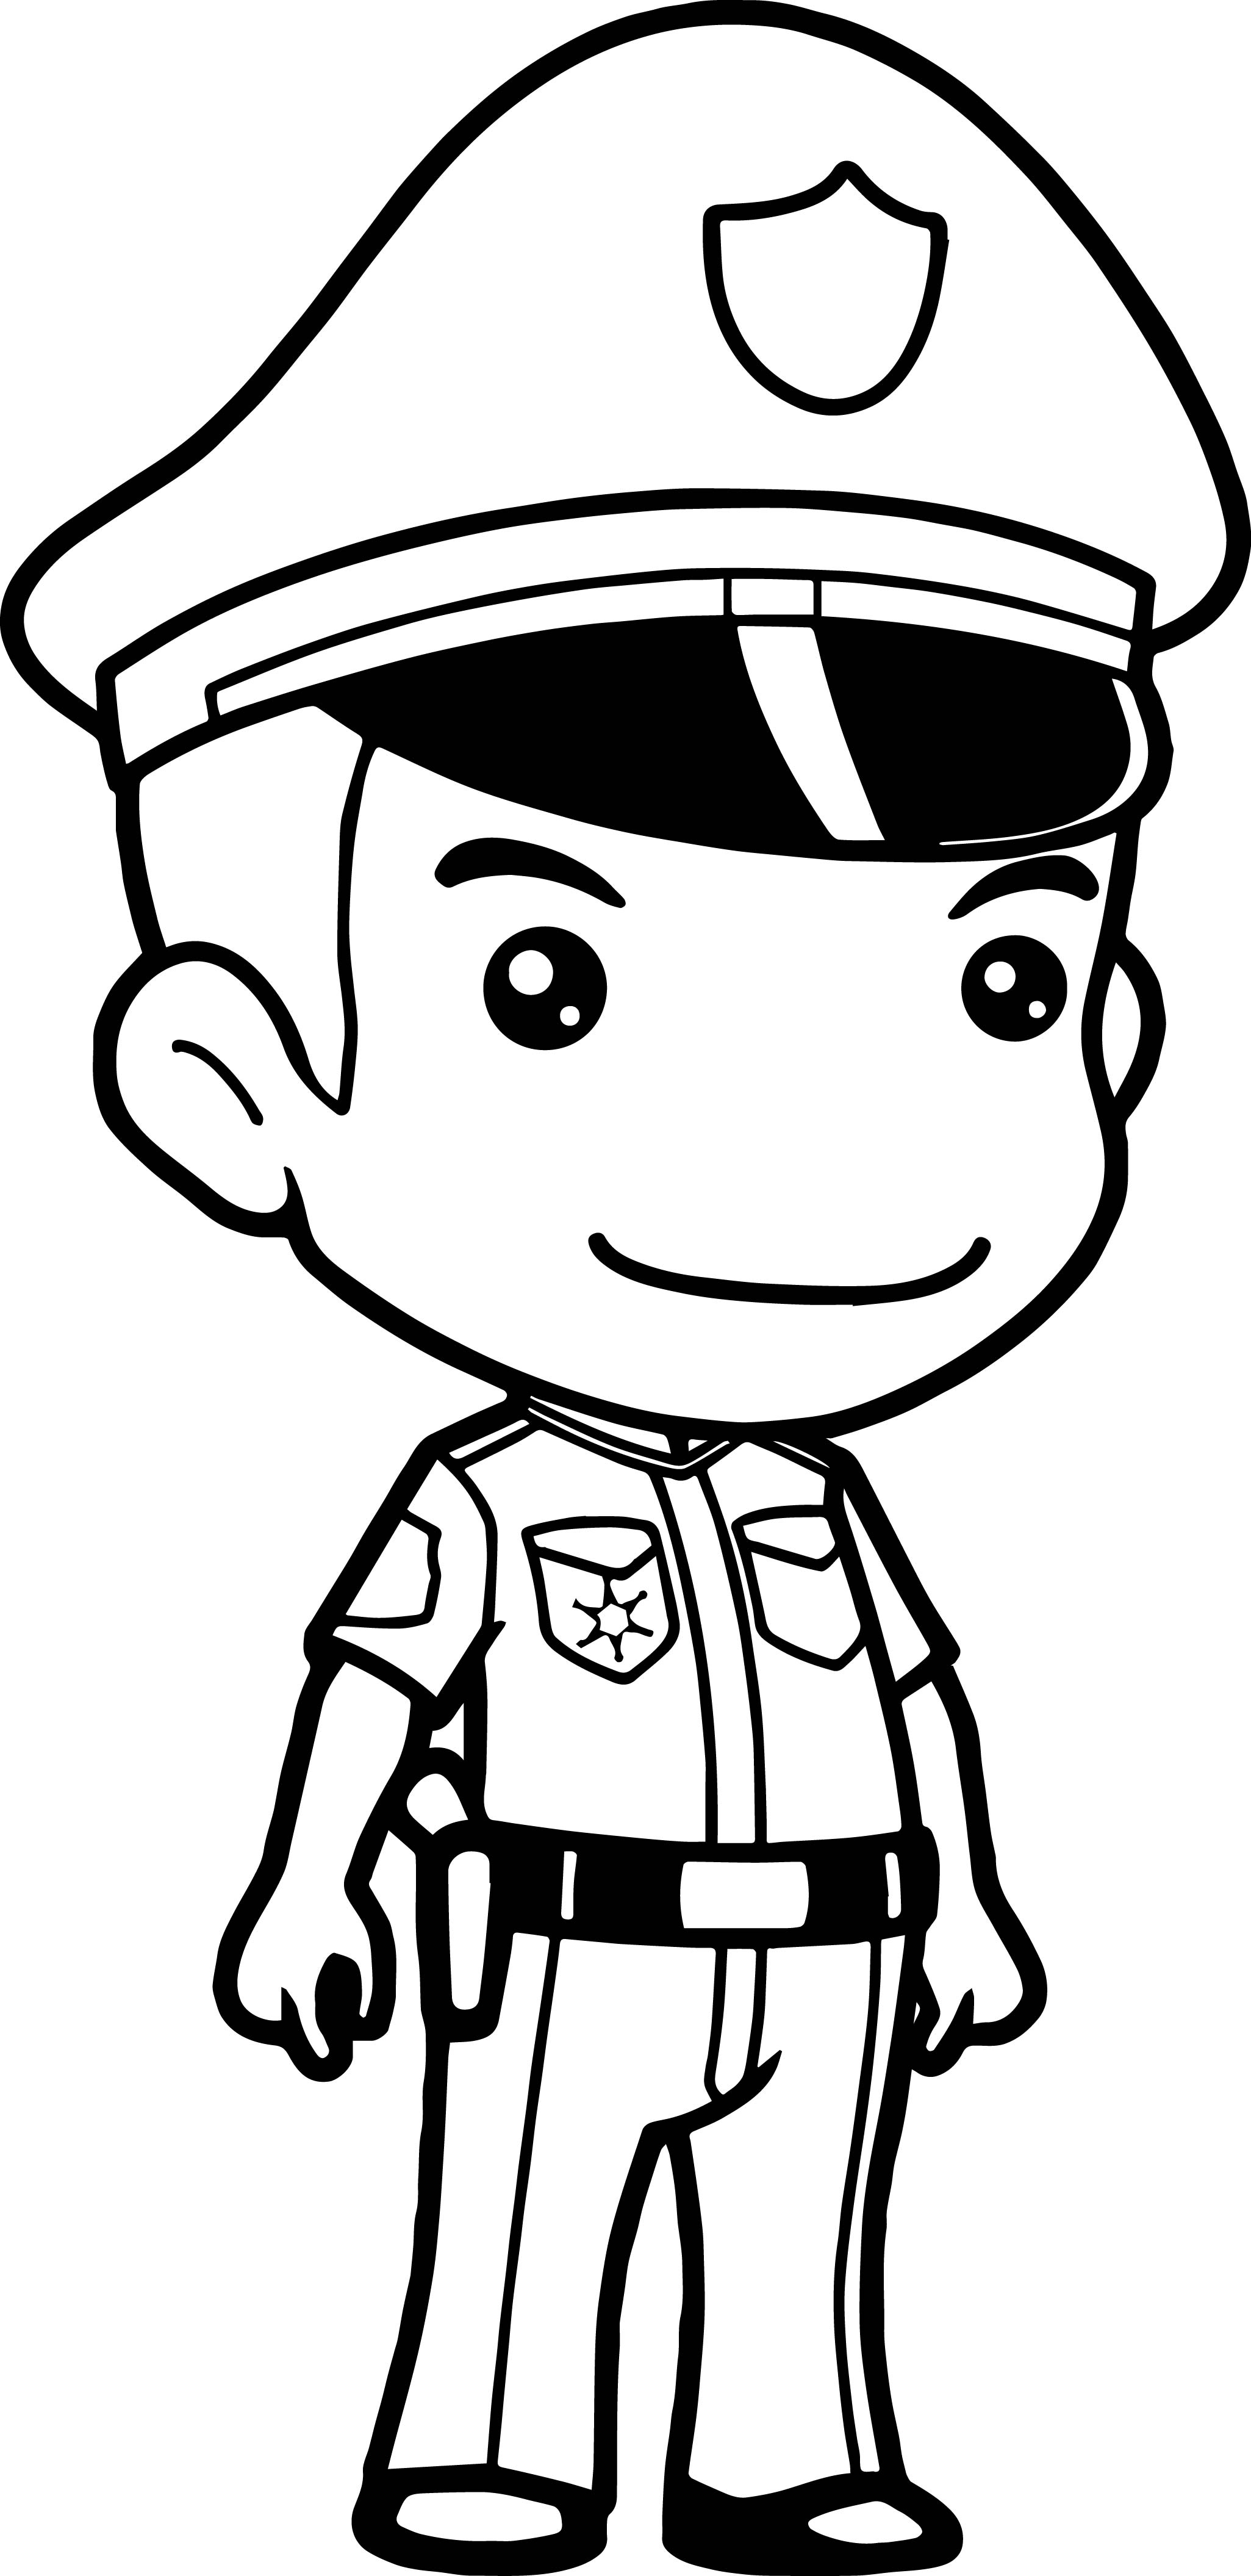 how to draw a policeman step by step how to draw how step step draw by policeman to a